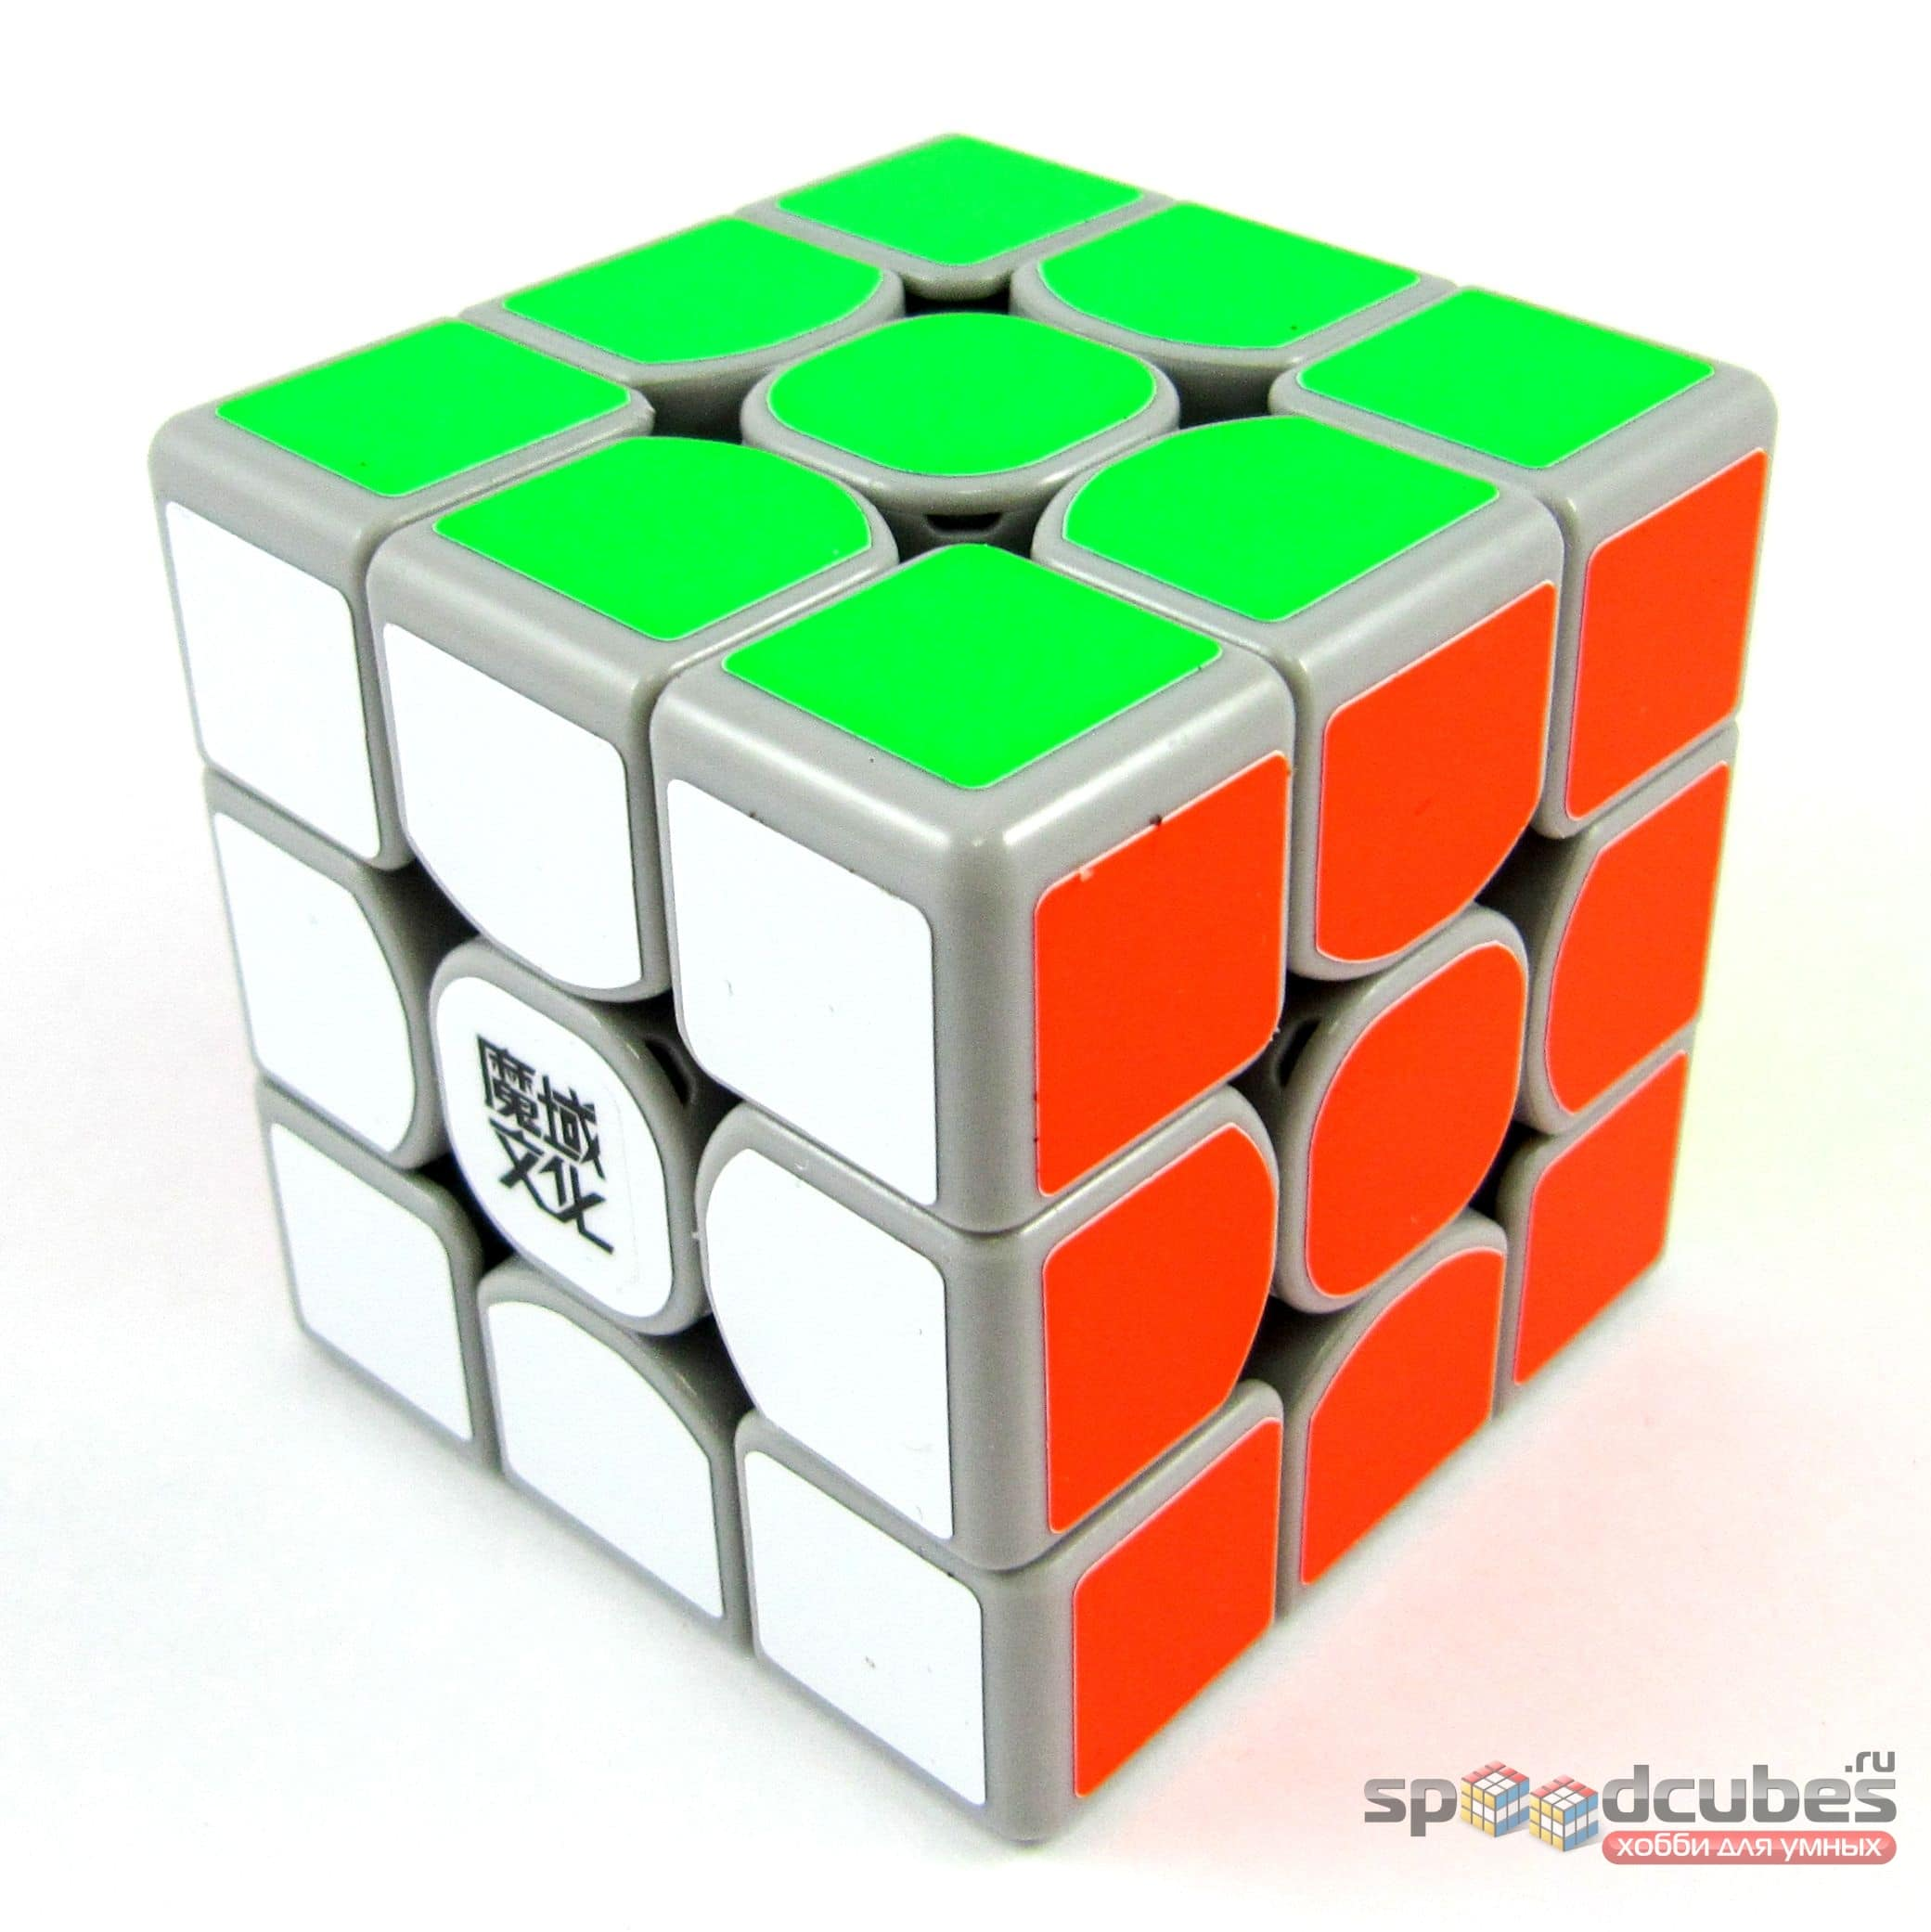 MoYu 3x3x3 Weilong GTS Grey